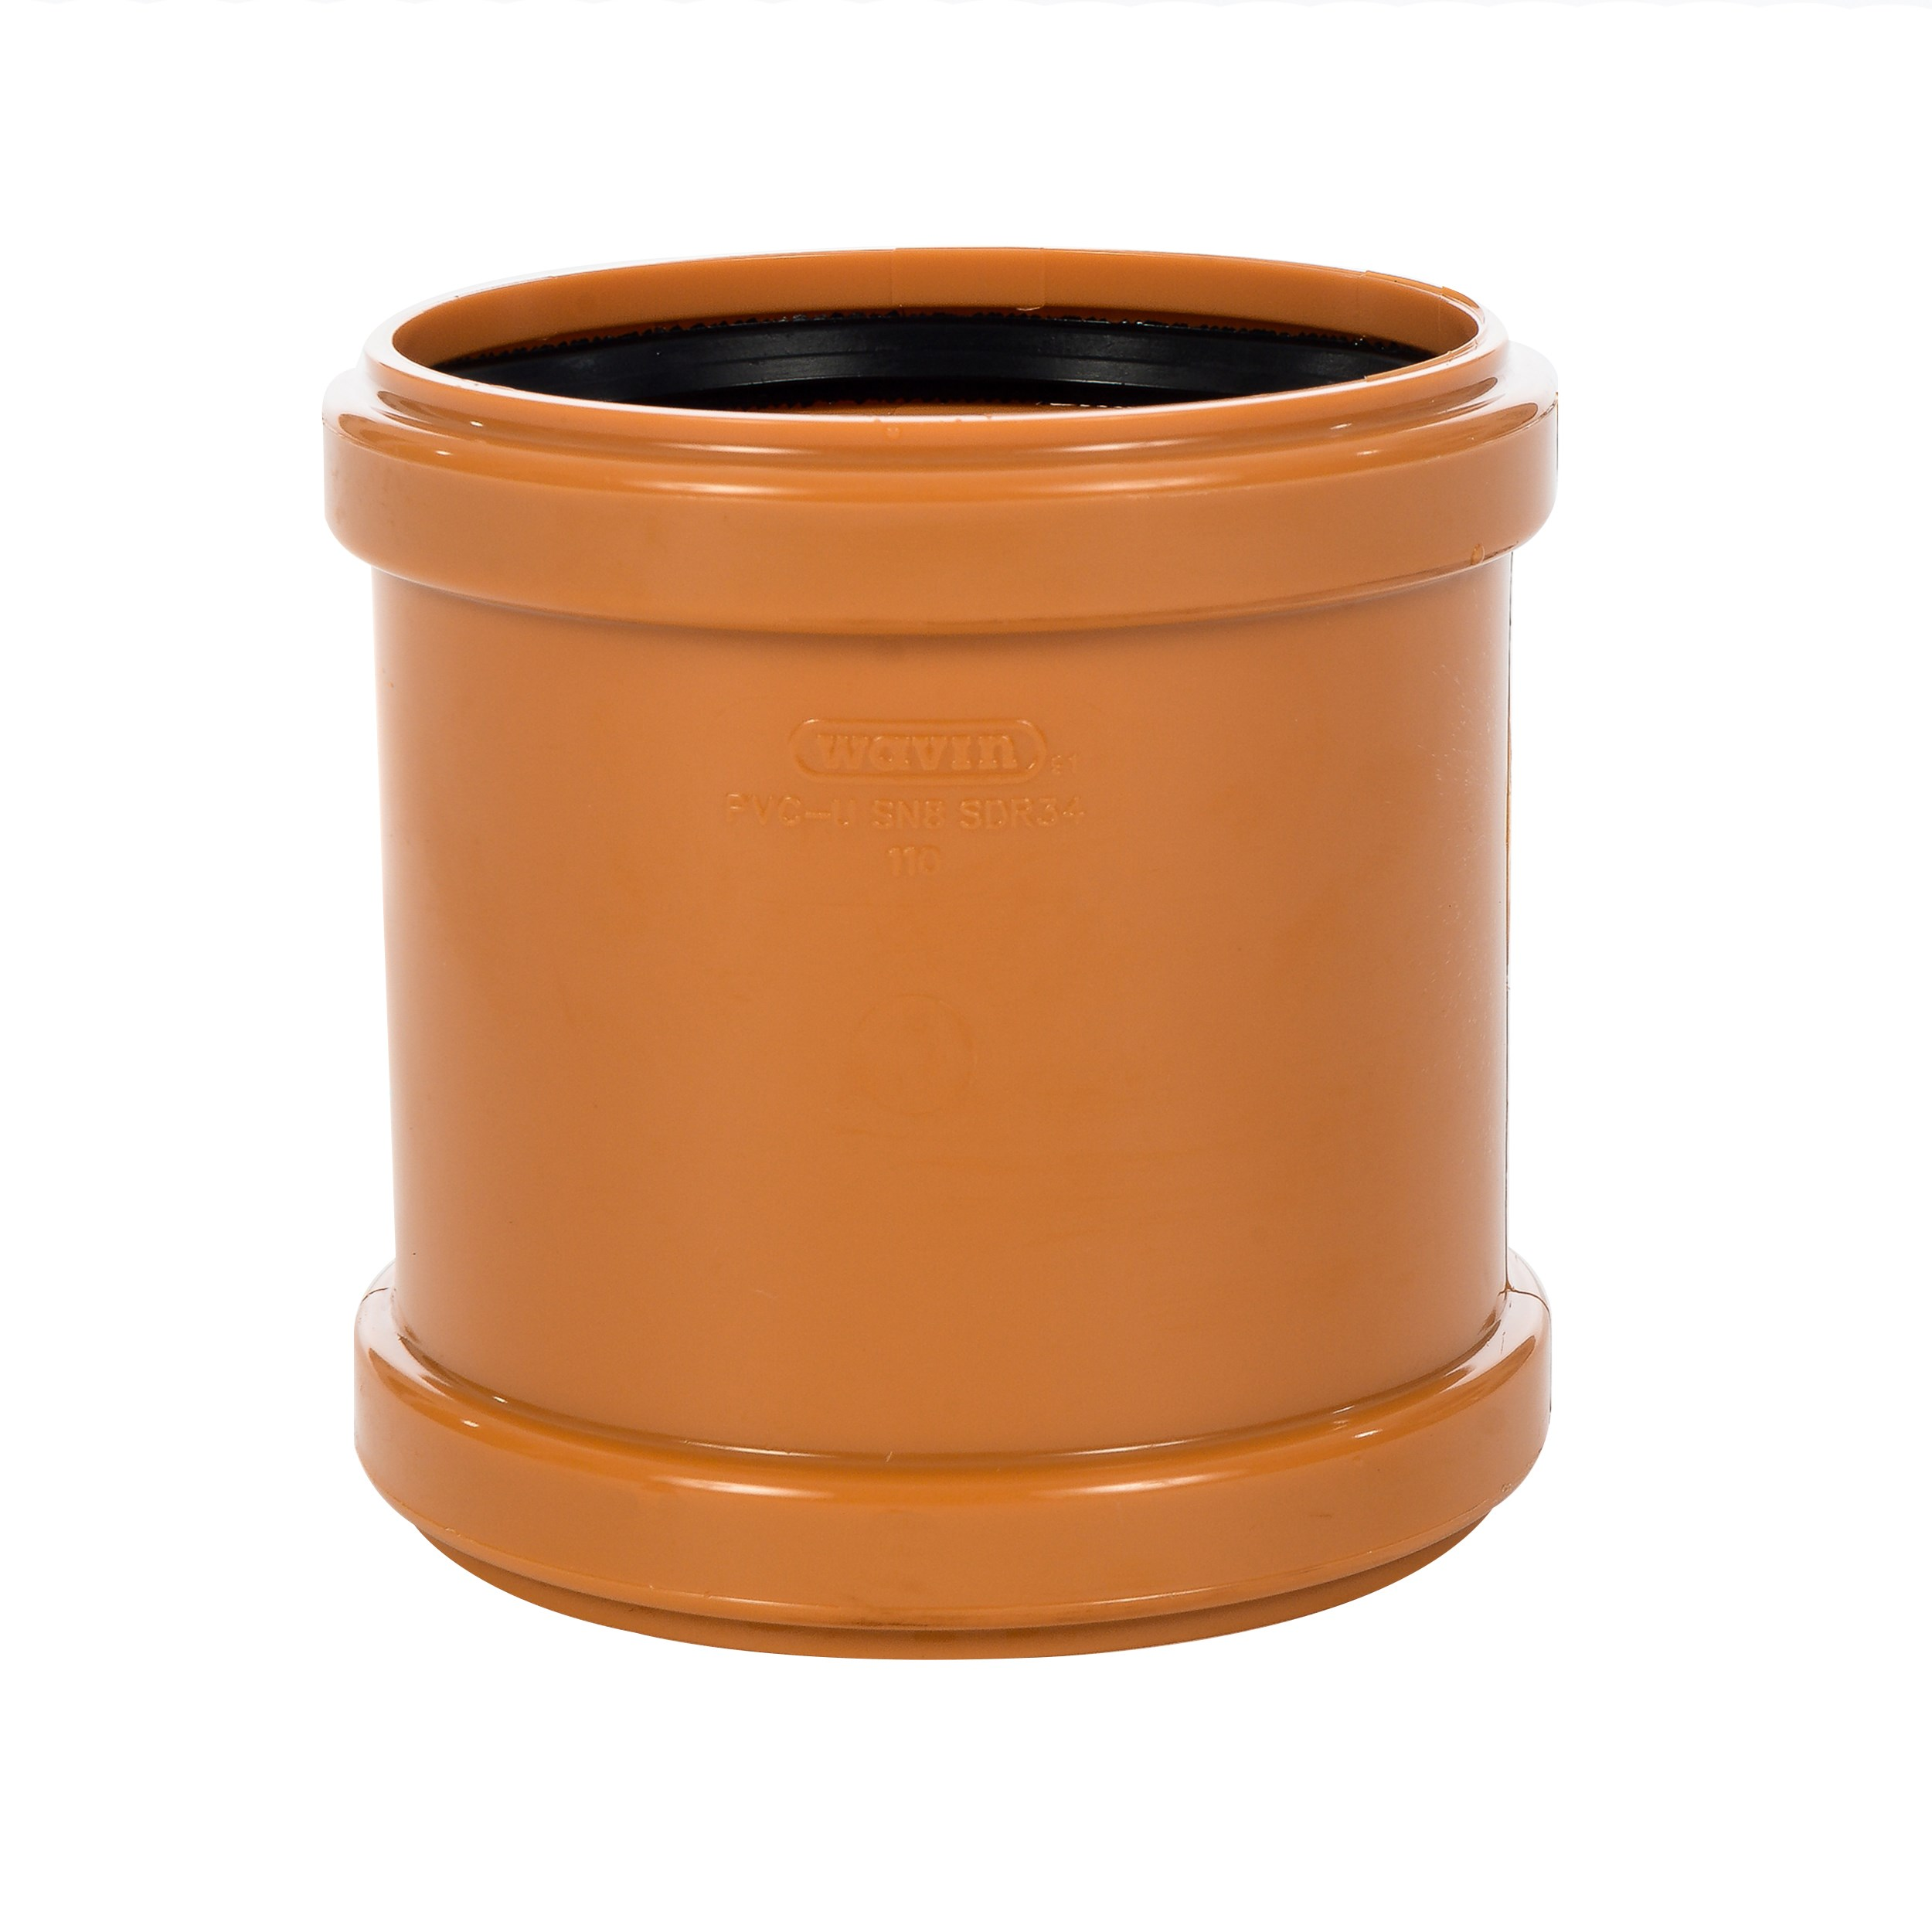 Wavin Pvc Sewer Pipe Coupler 110mm Sewer Fittings